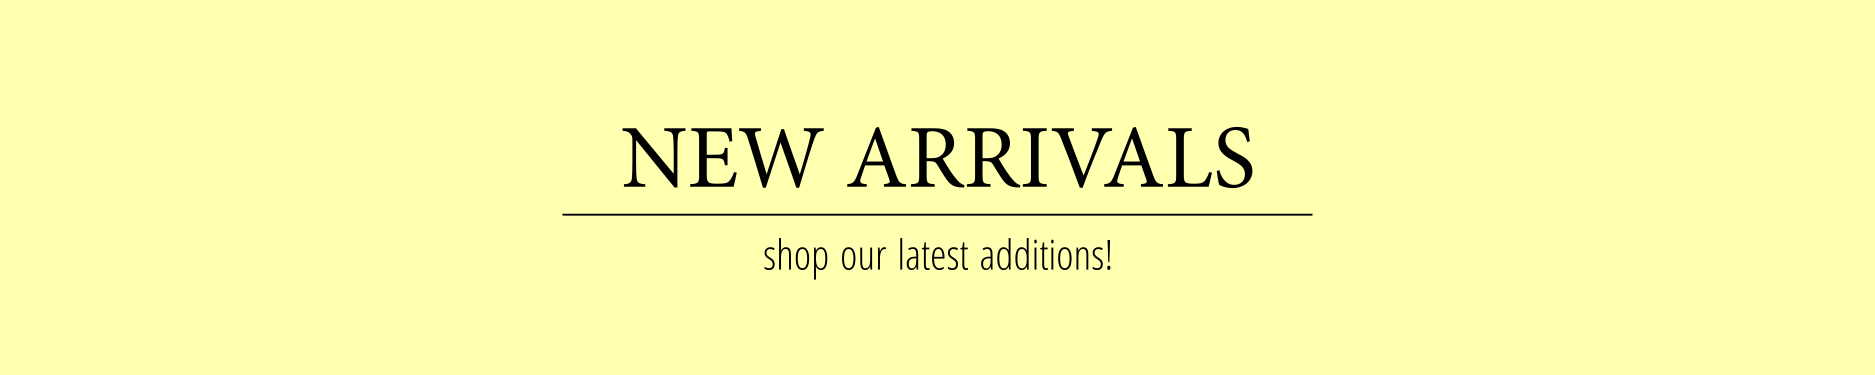 Shop New Arrivals at Chuusi.ca